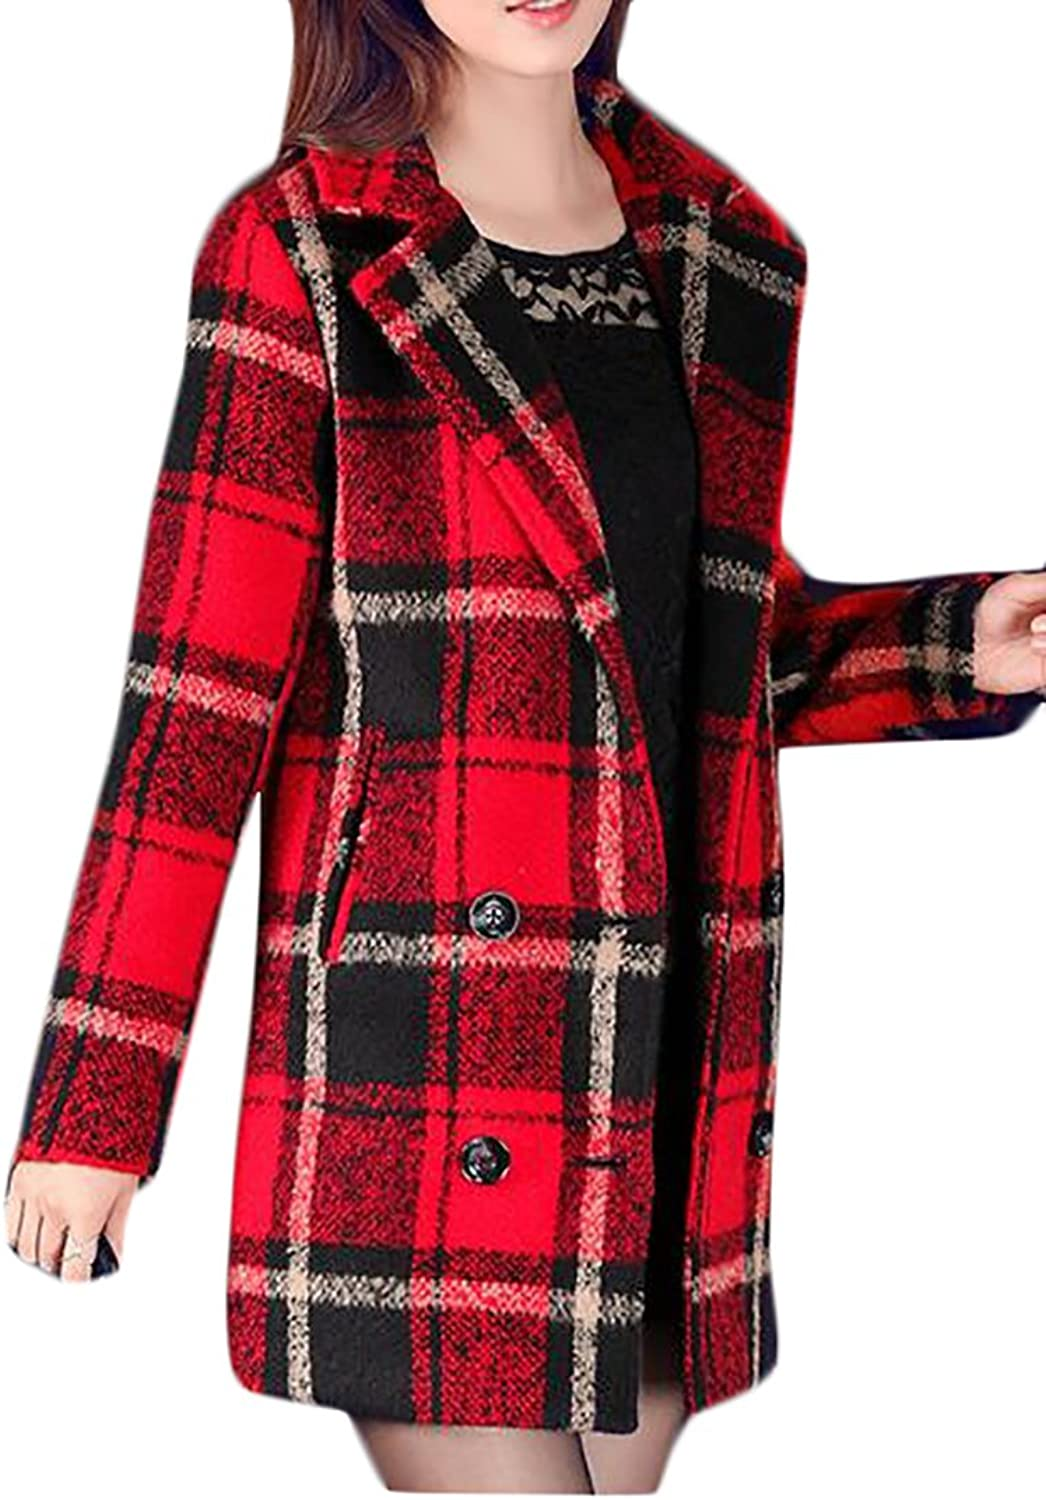 Domple Womens Vogue Plaid Lapel Double Breasted Wool Blend Pea Coats